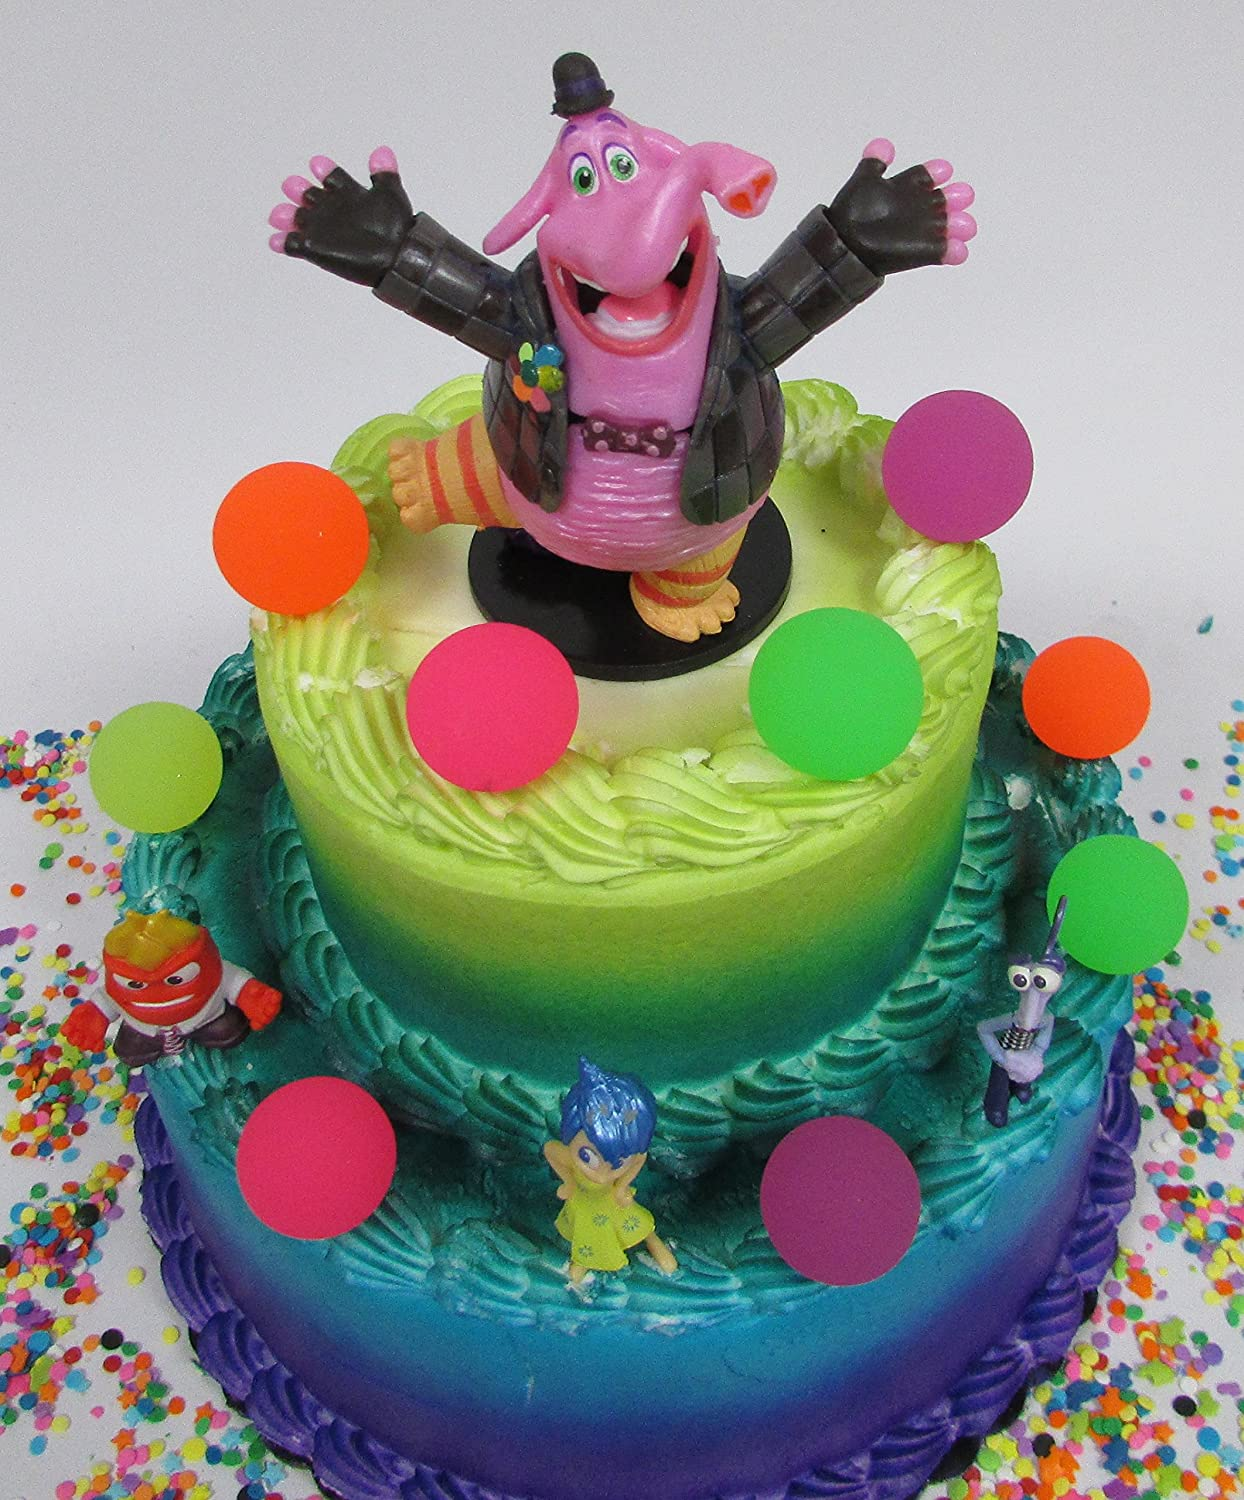 Amazon.com: Inside Out BING BONG Birthday Cake Topper Set Featuring ...